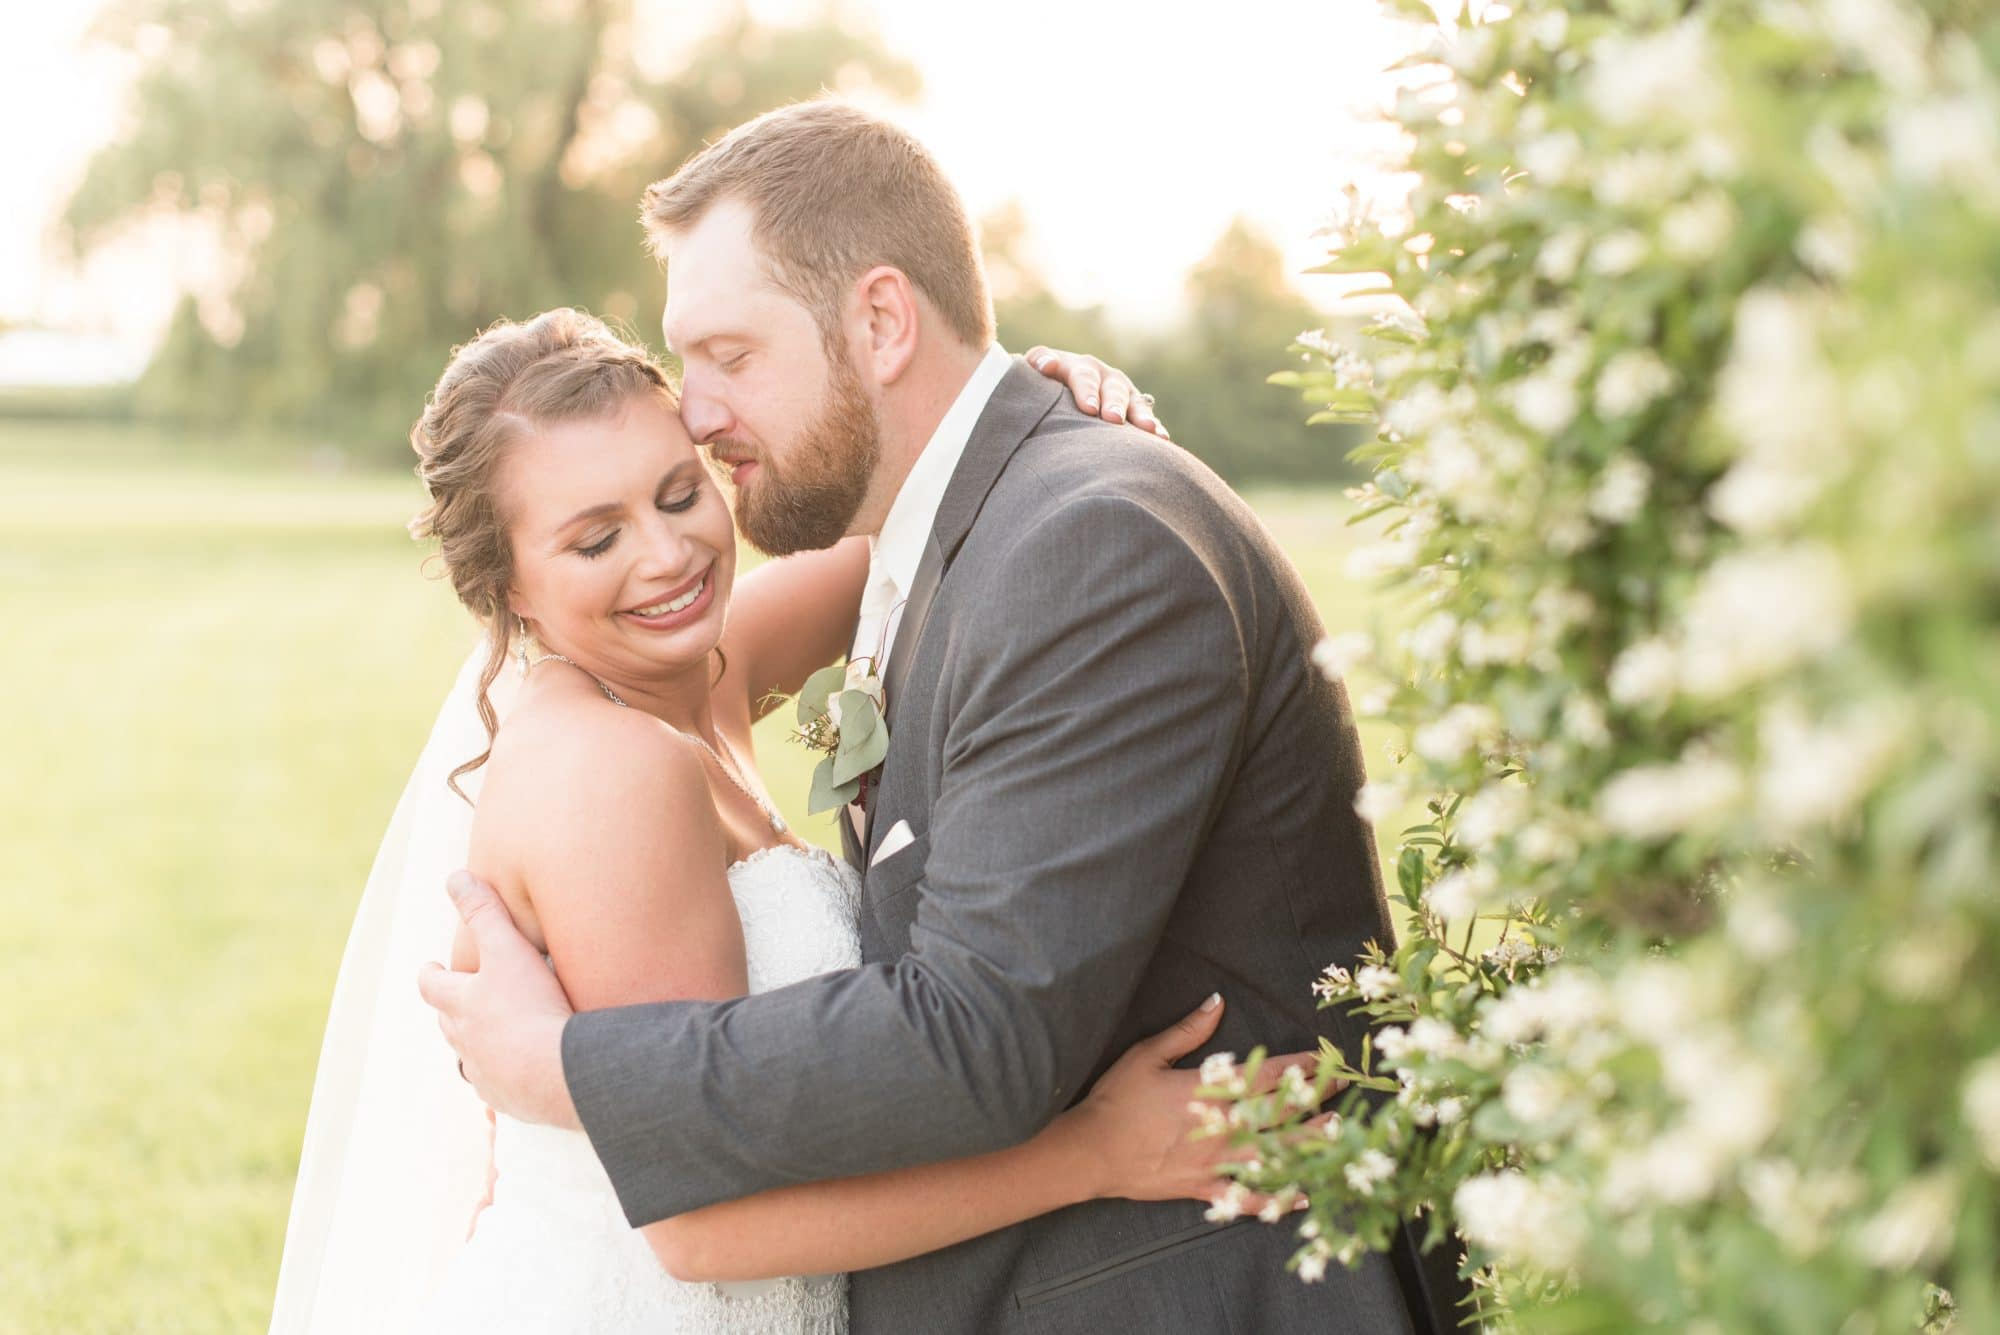 Lafayette, Indiana wedding photographer Victoria Rayburn photographed the Gall wedding at Amish Acres.